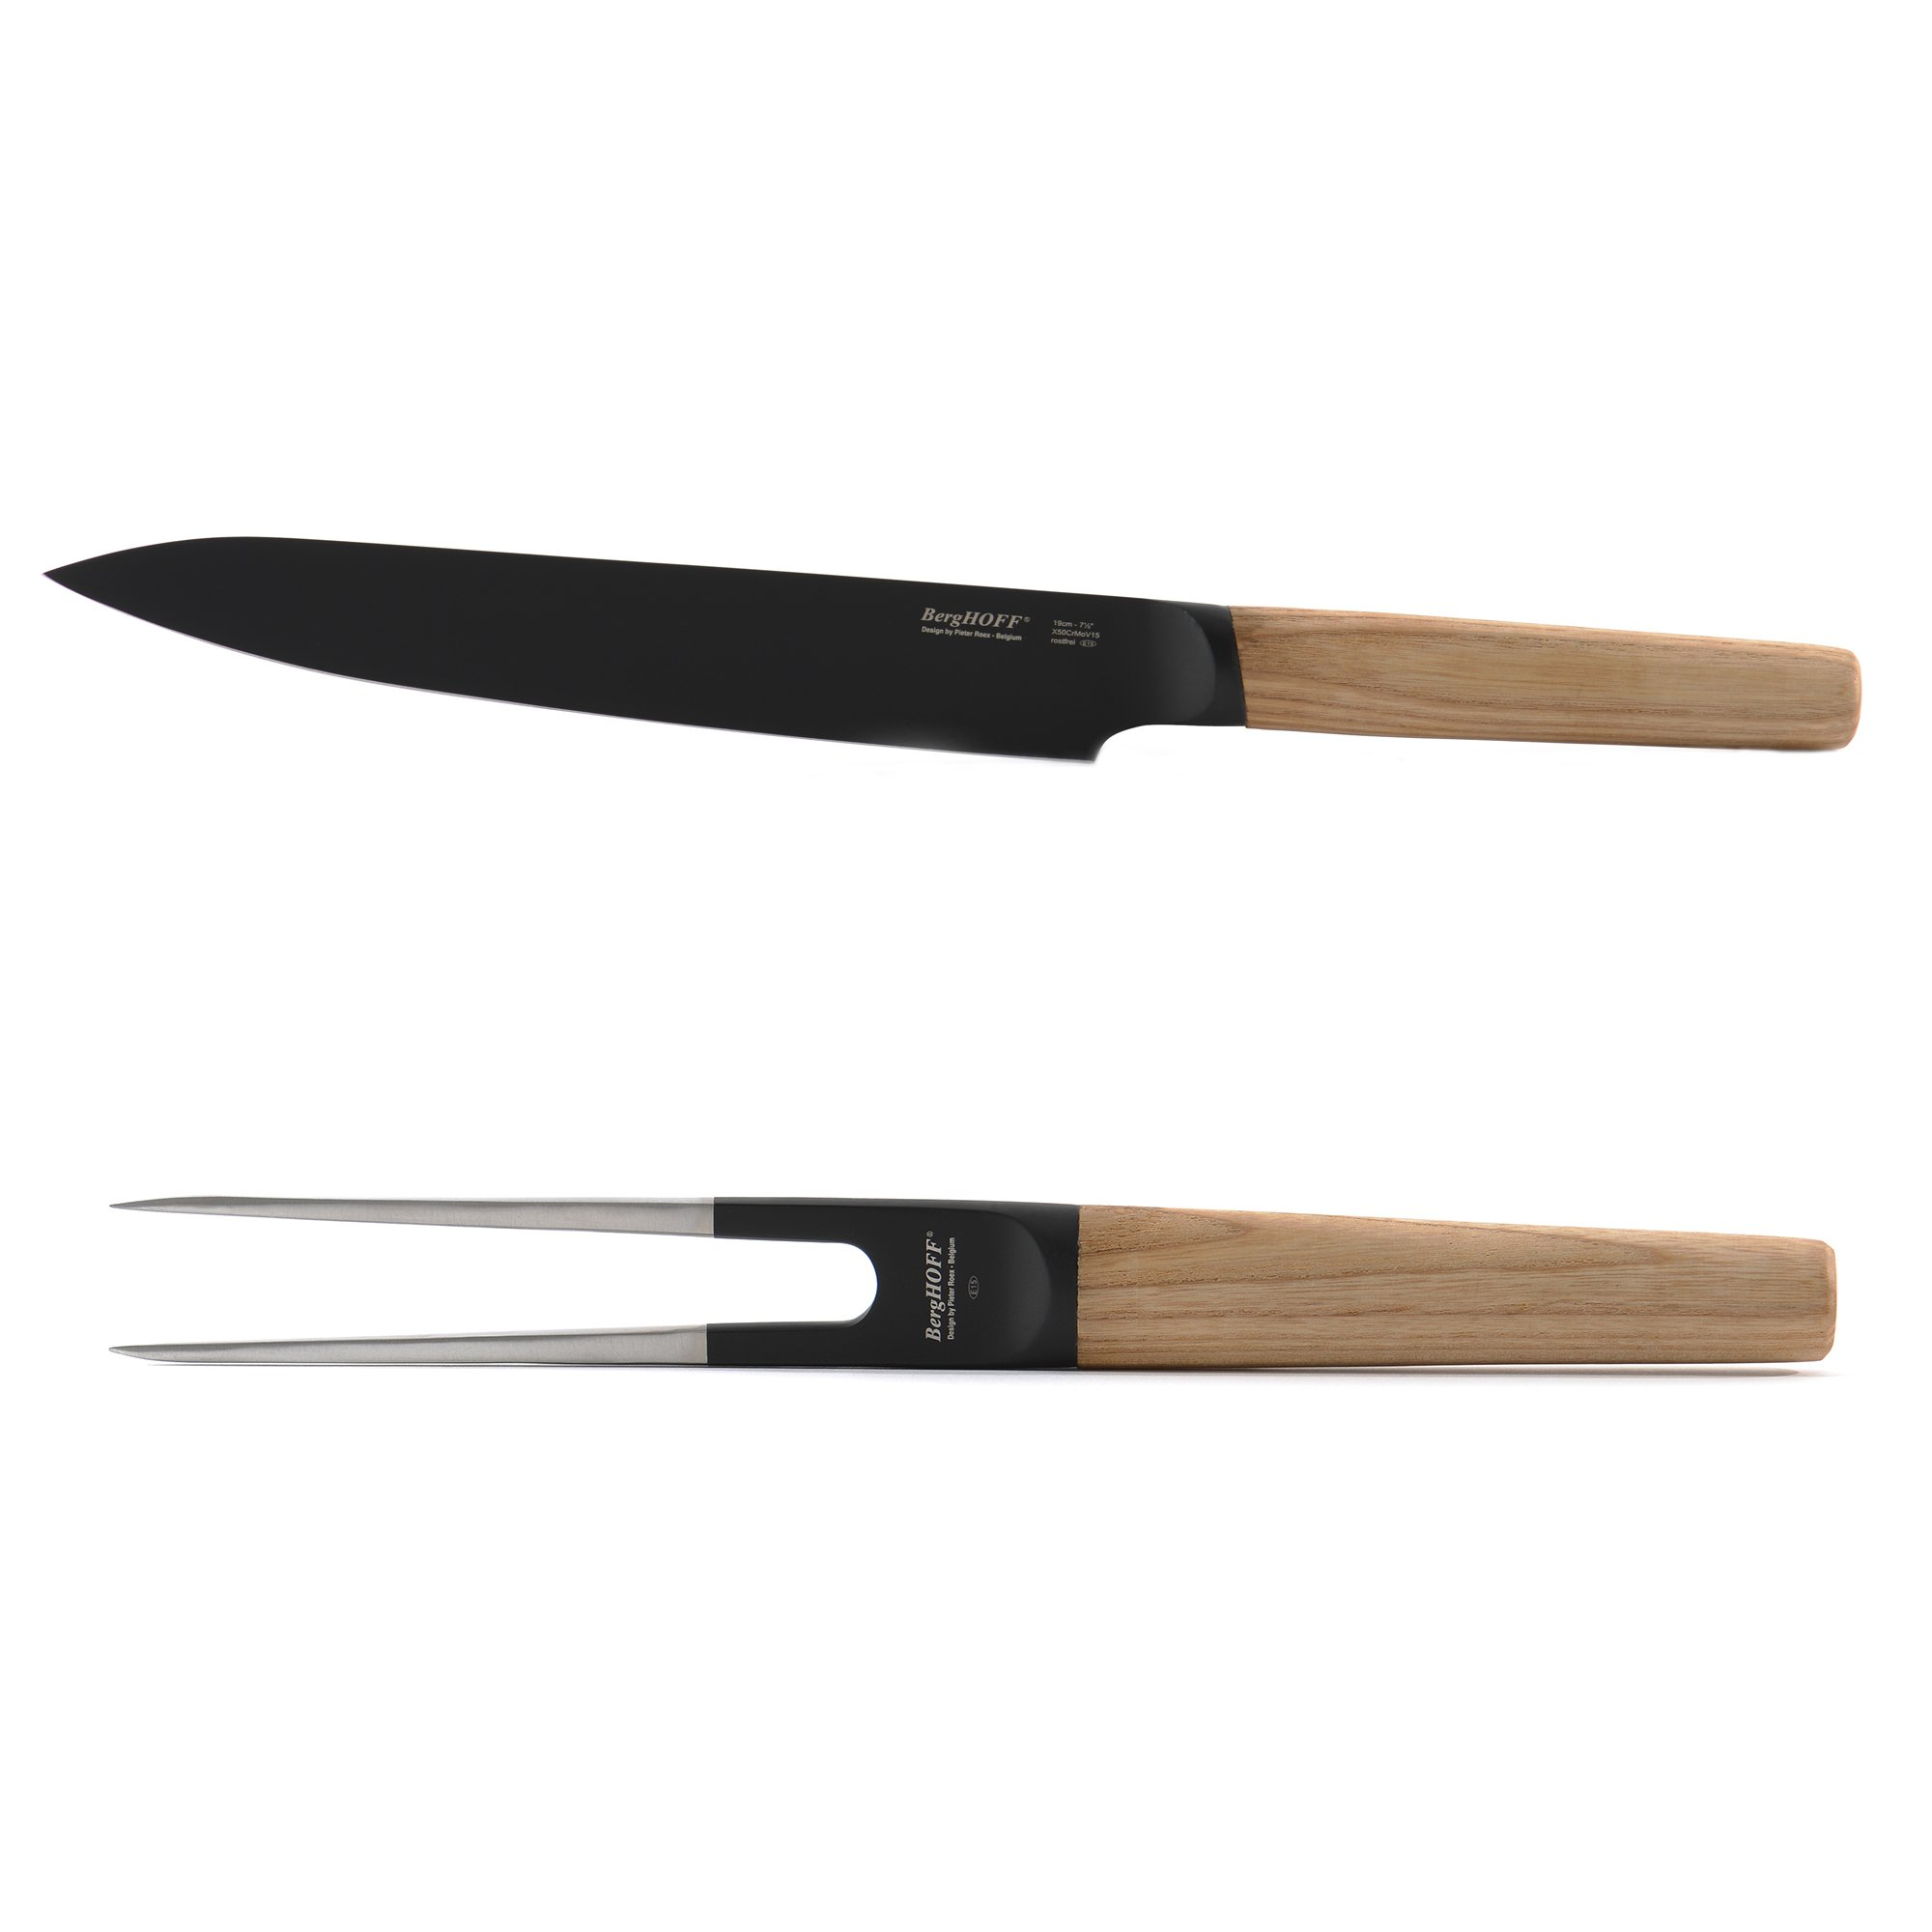 BergHOFF 2 Piece Knife & Fork Carving Set, Natural